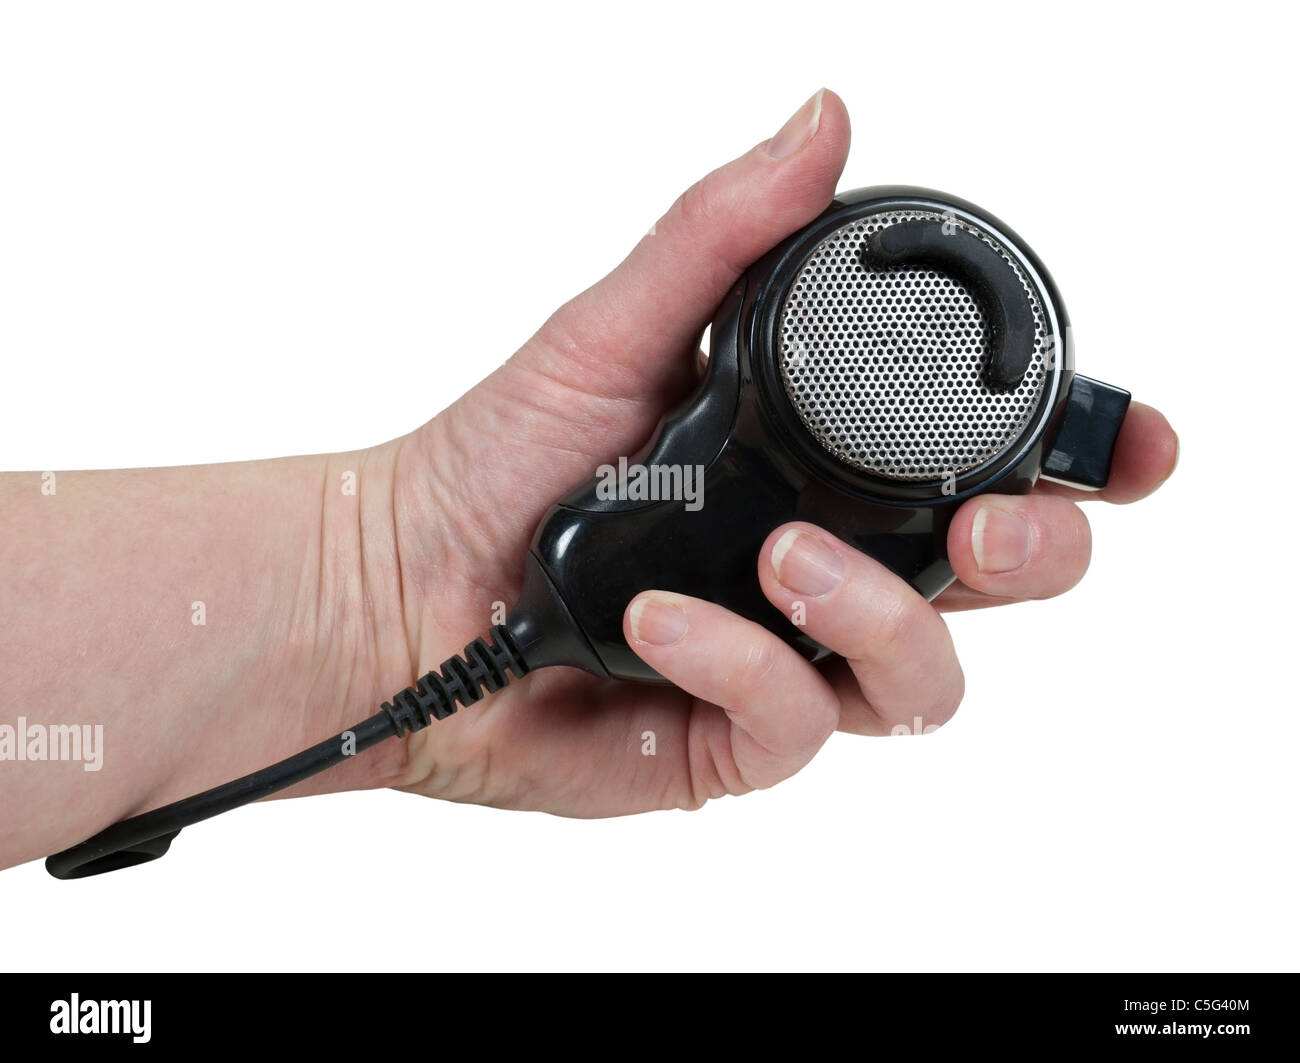 Holding a handheld microphone used to communicate via citizen band radio - path included Stock Photo